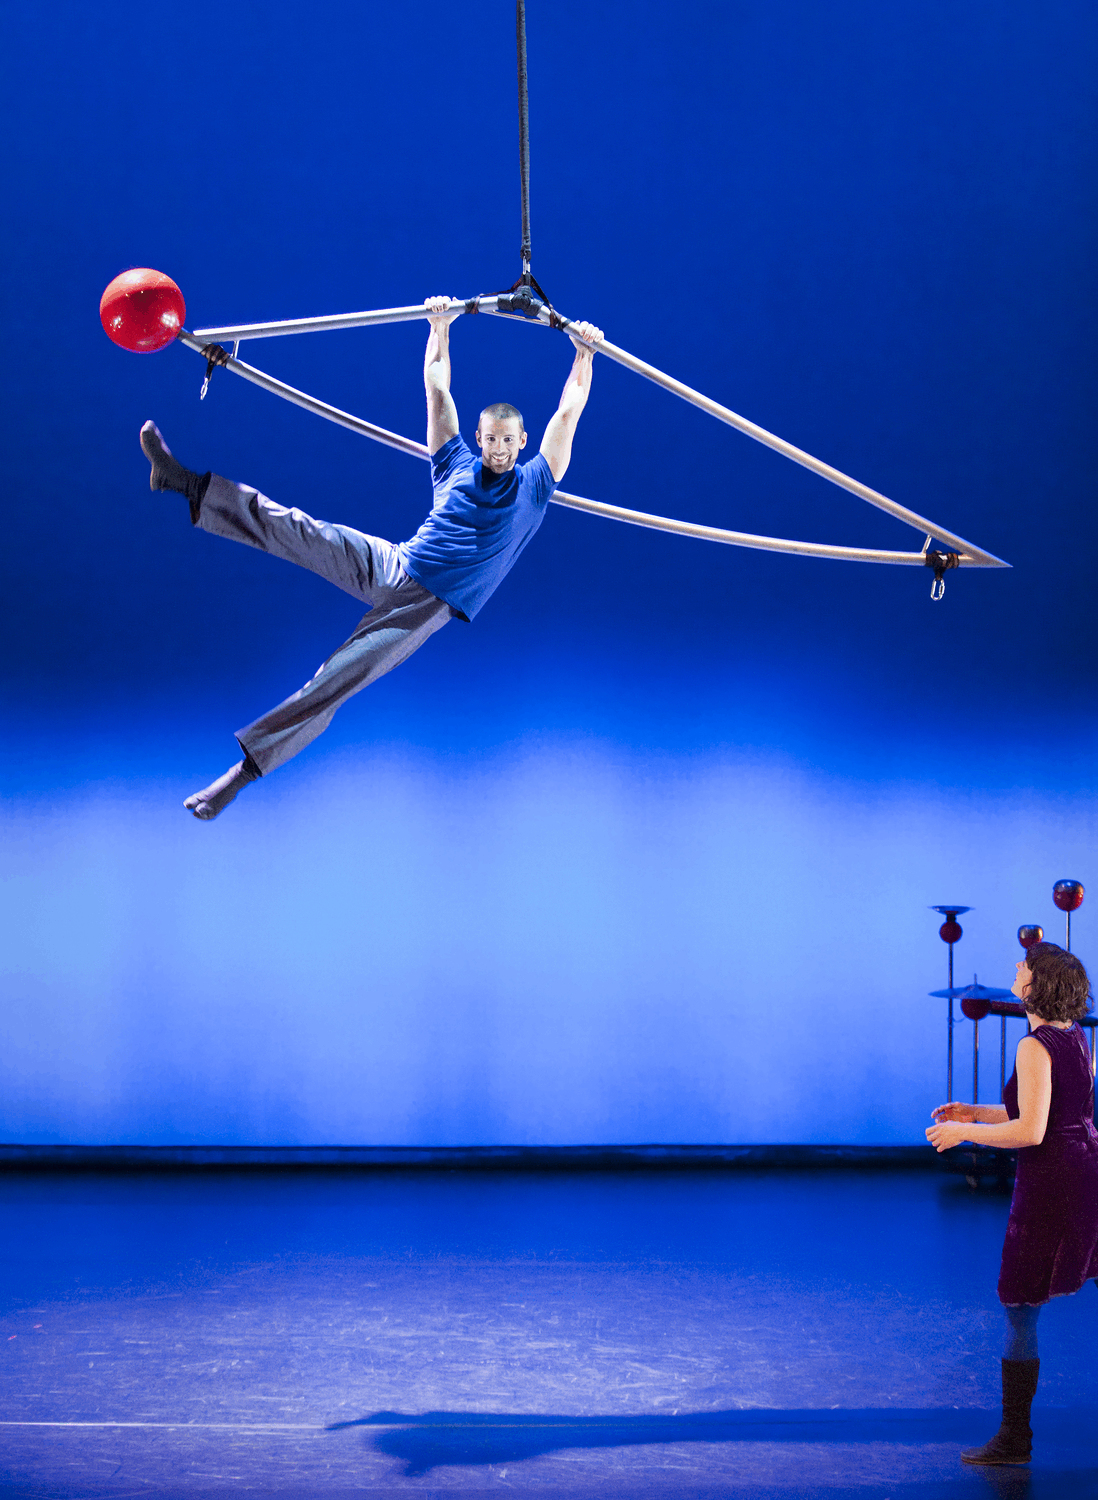 a aerialist hangs for a triangular metal shape with a red ball ot one end high above the stage. Another female performer watches from below